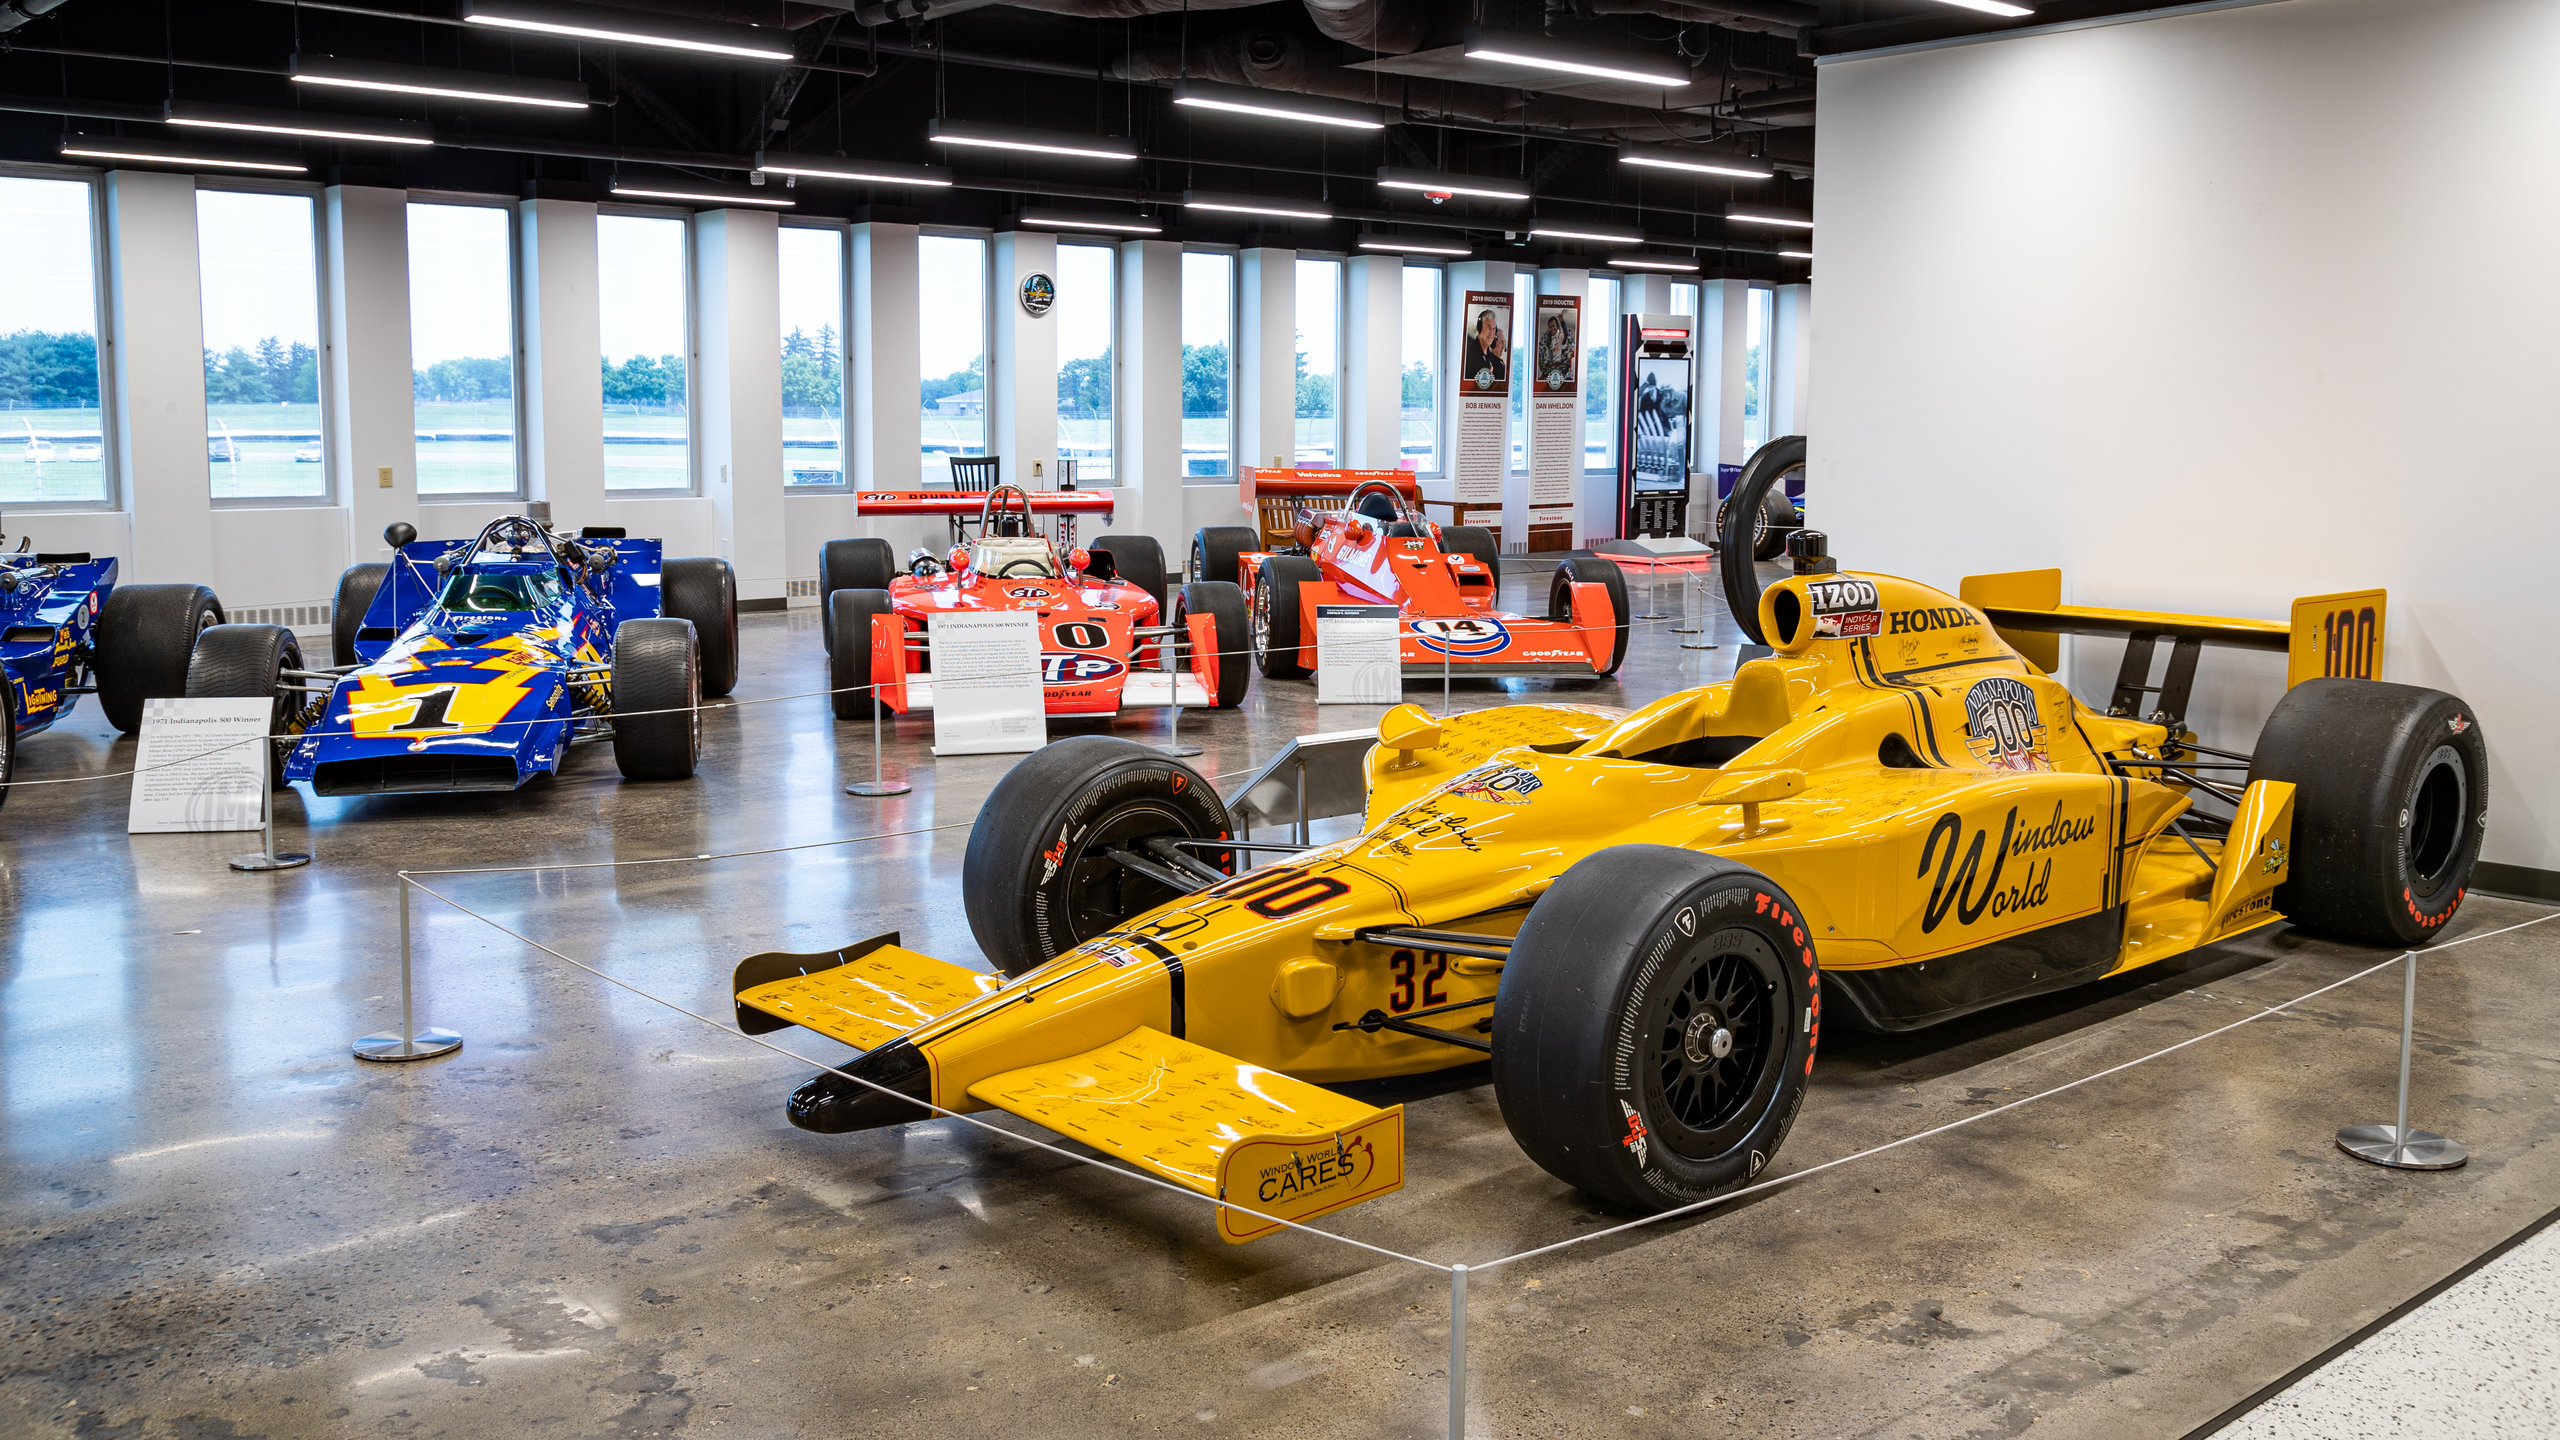 Indianapolis Motor Speedway Hall of Fame Museum, Indianapolis, Indiana, Verenigde Staten